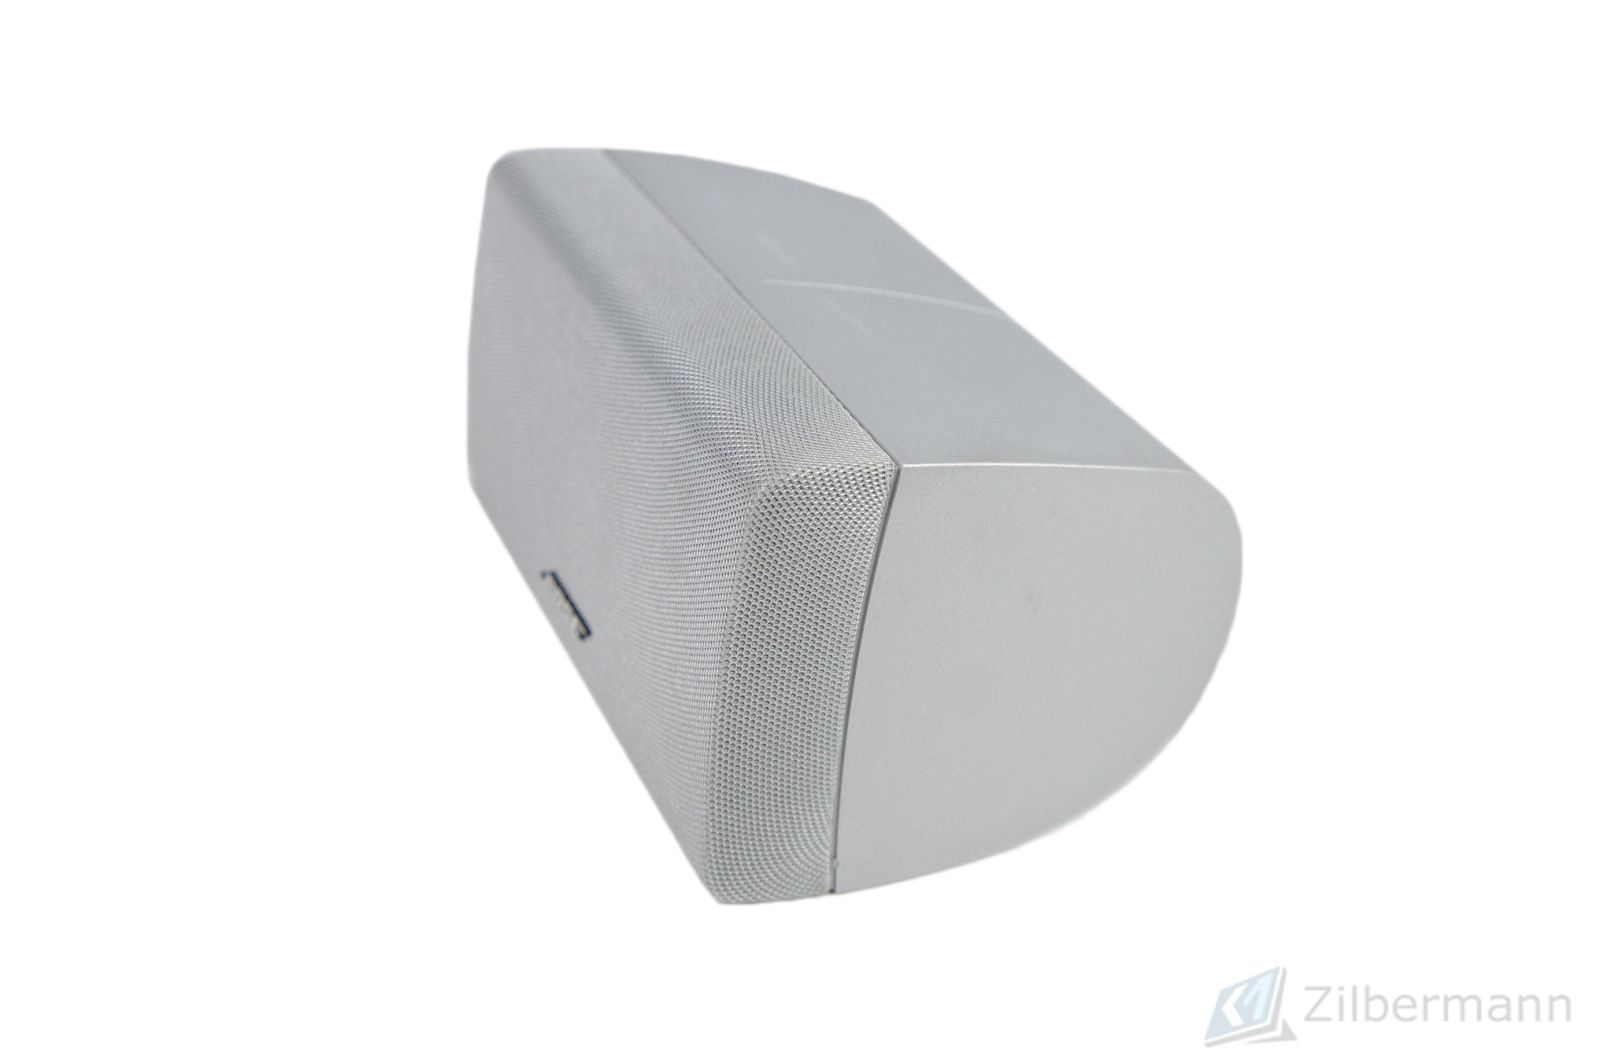 Bose_Acoustimass_Lifestyle_Center_Lautsprecher_Box_Satellite_Series_III_silber_02